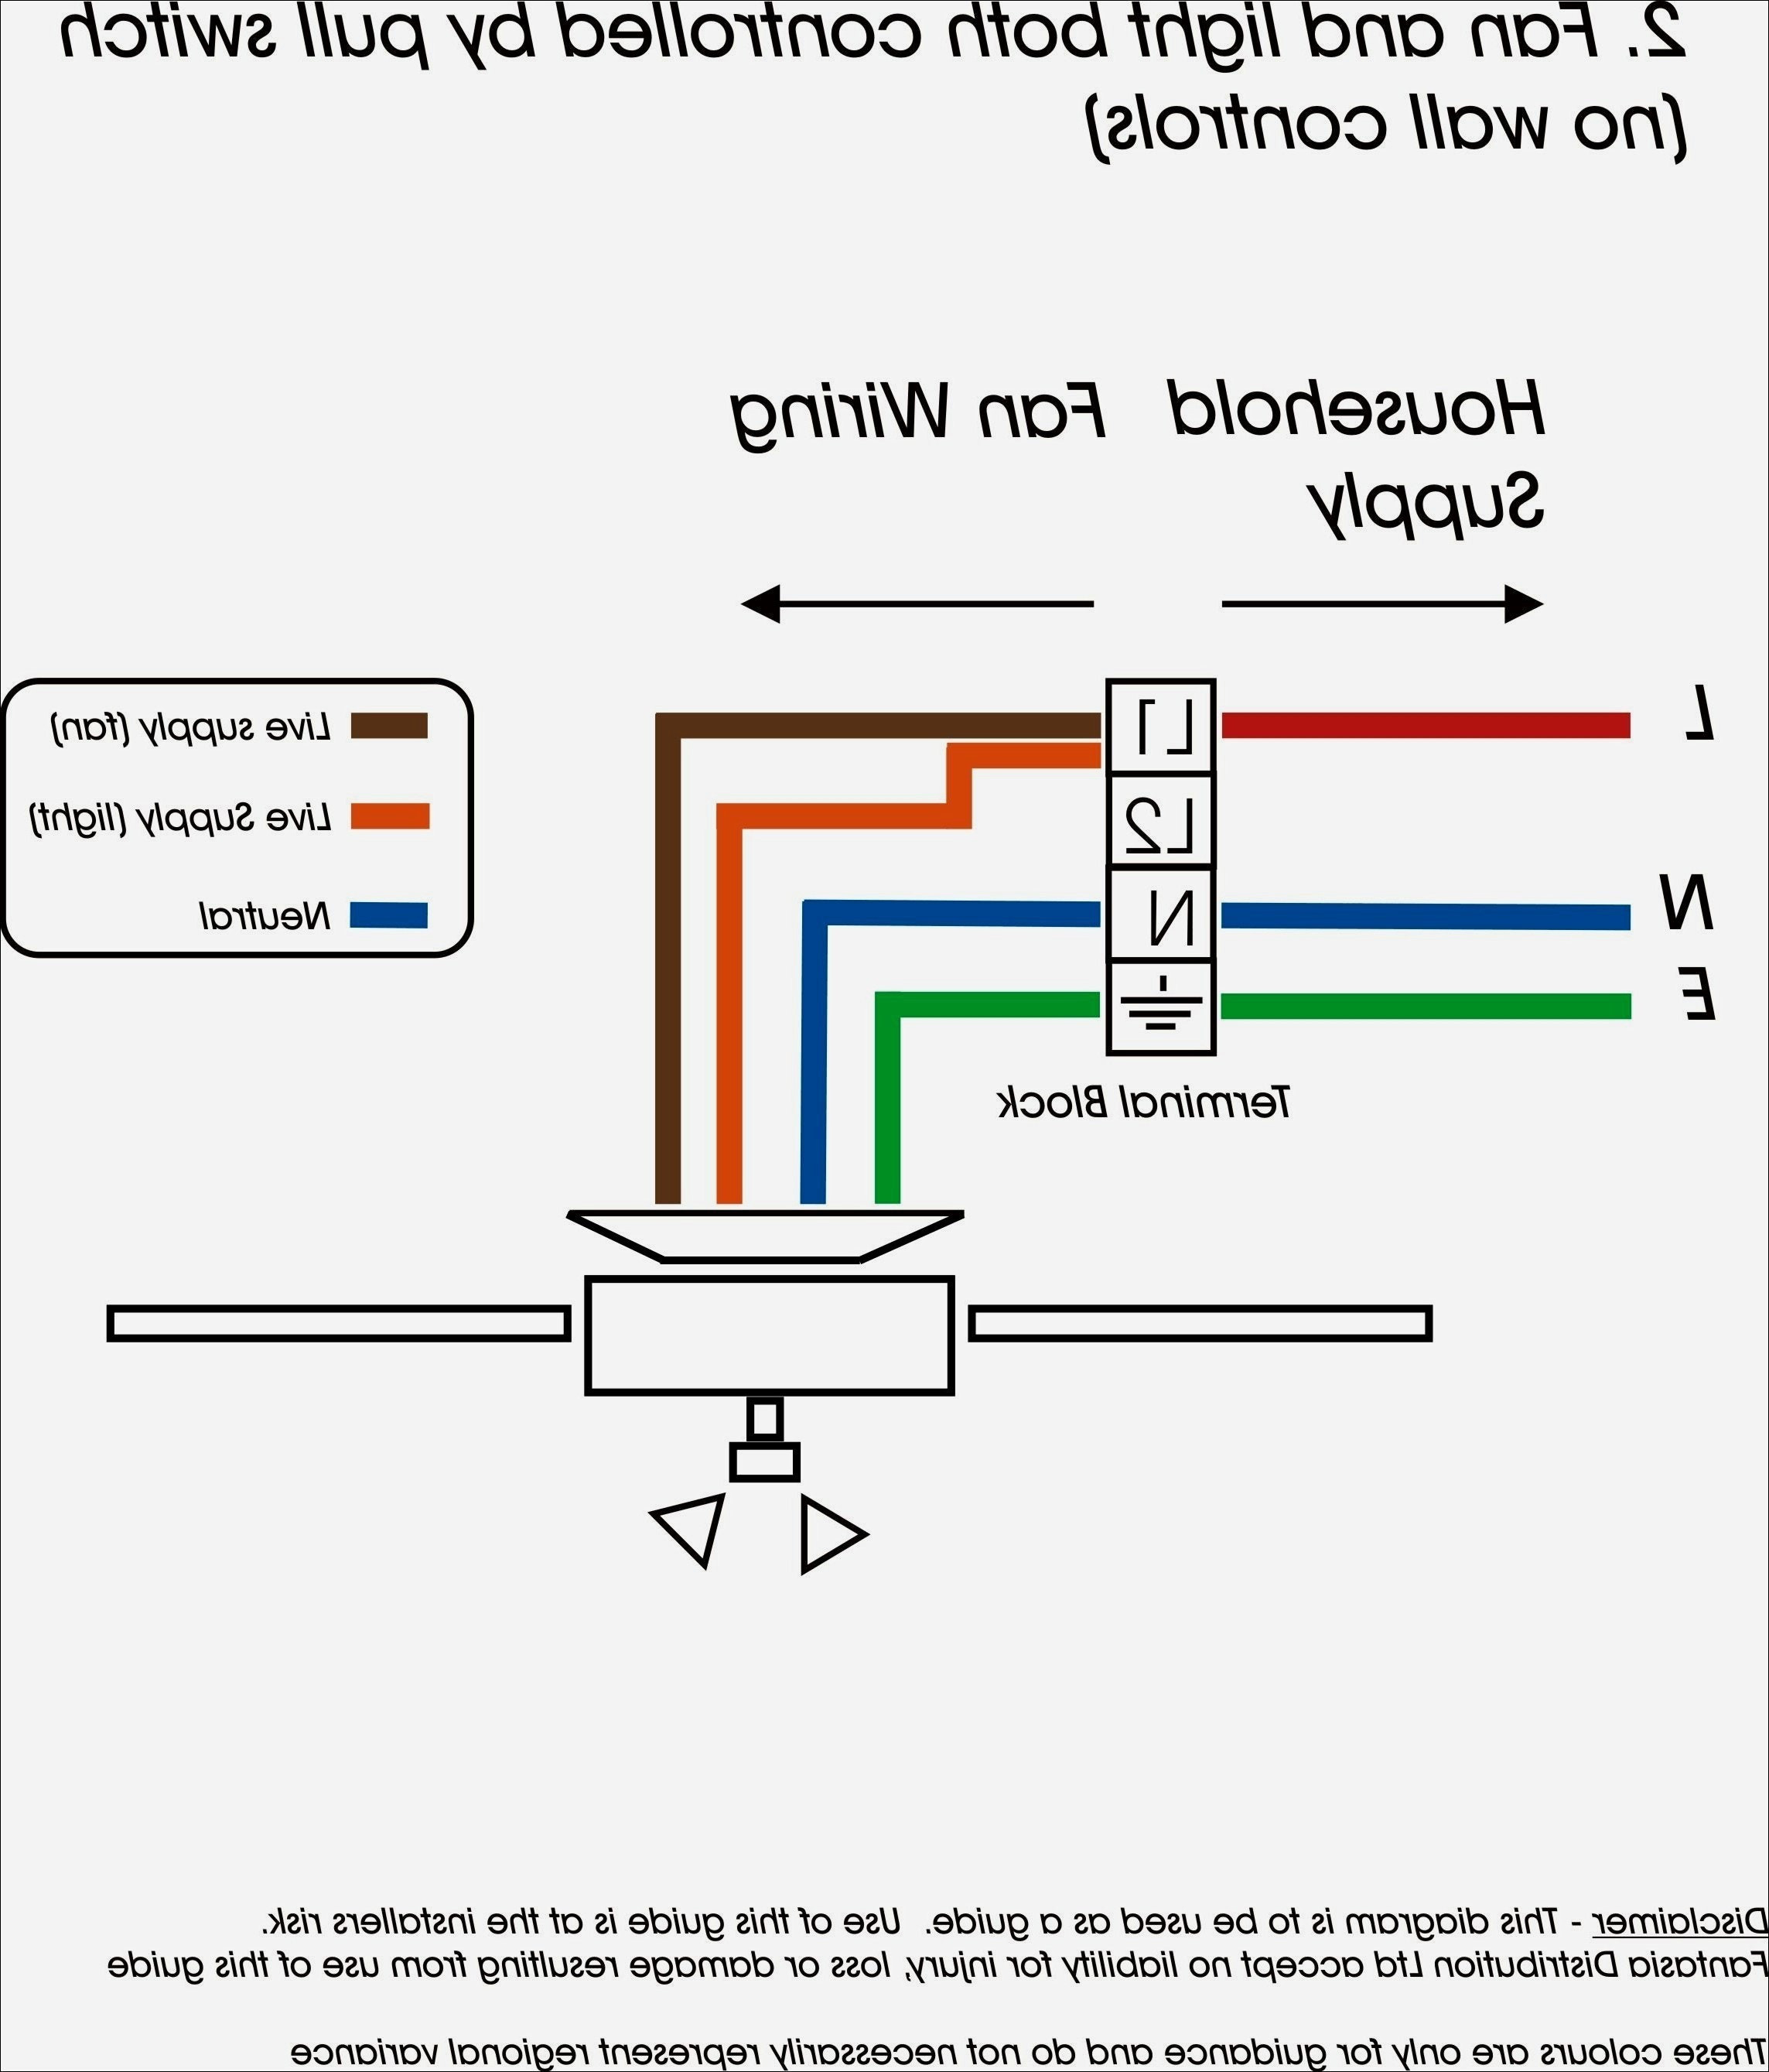 lutron diva dimmer wiring diagram Collection-Valid Wiring Diagram for Dimmer Switch Australia 14-f